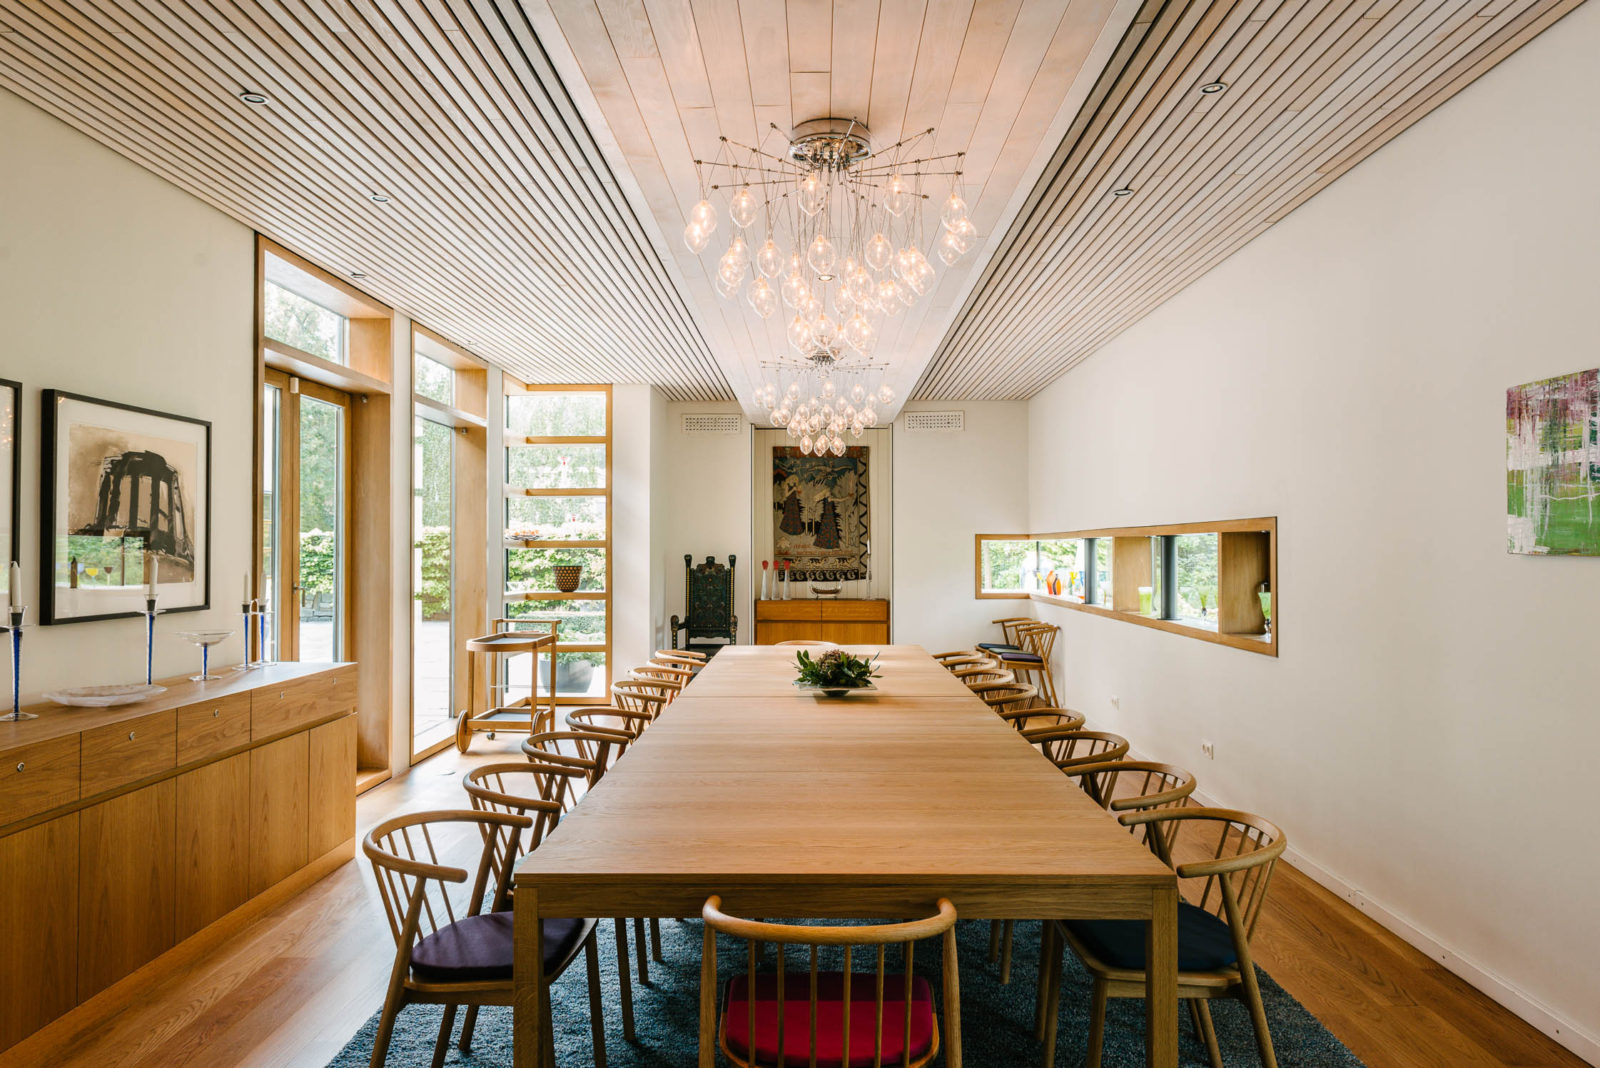 A seat at the Norwegian table: Celebrating the distinctive